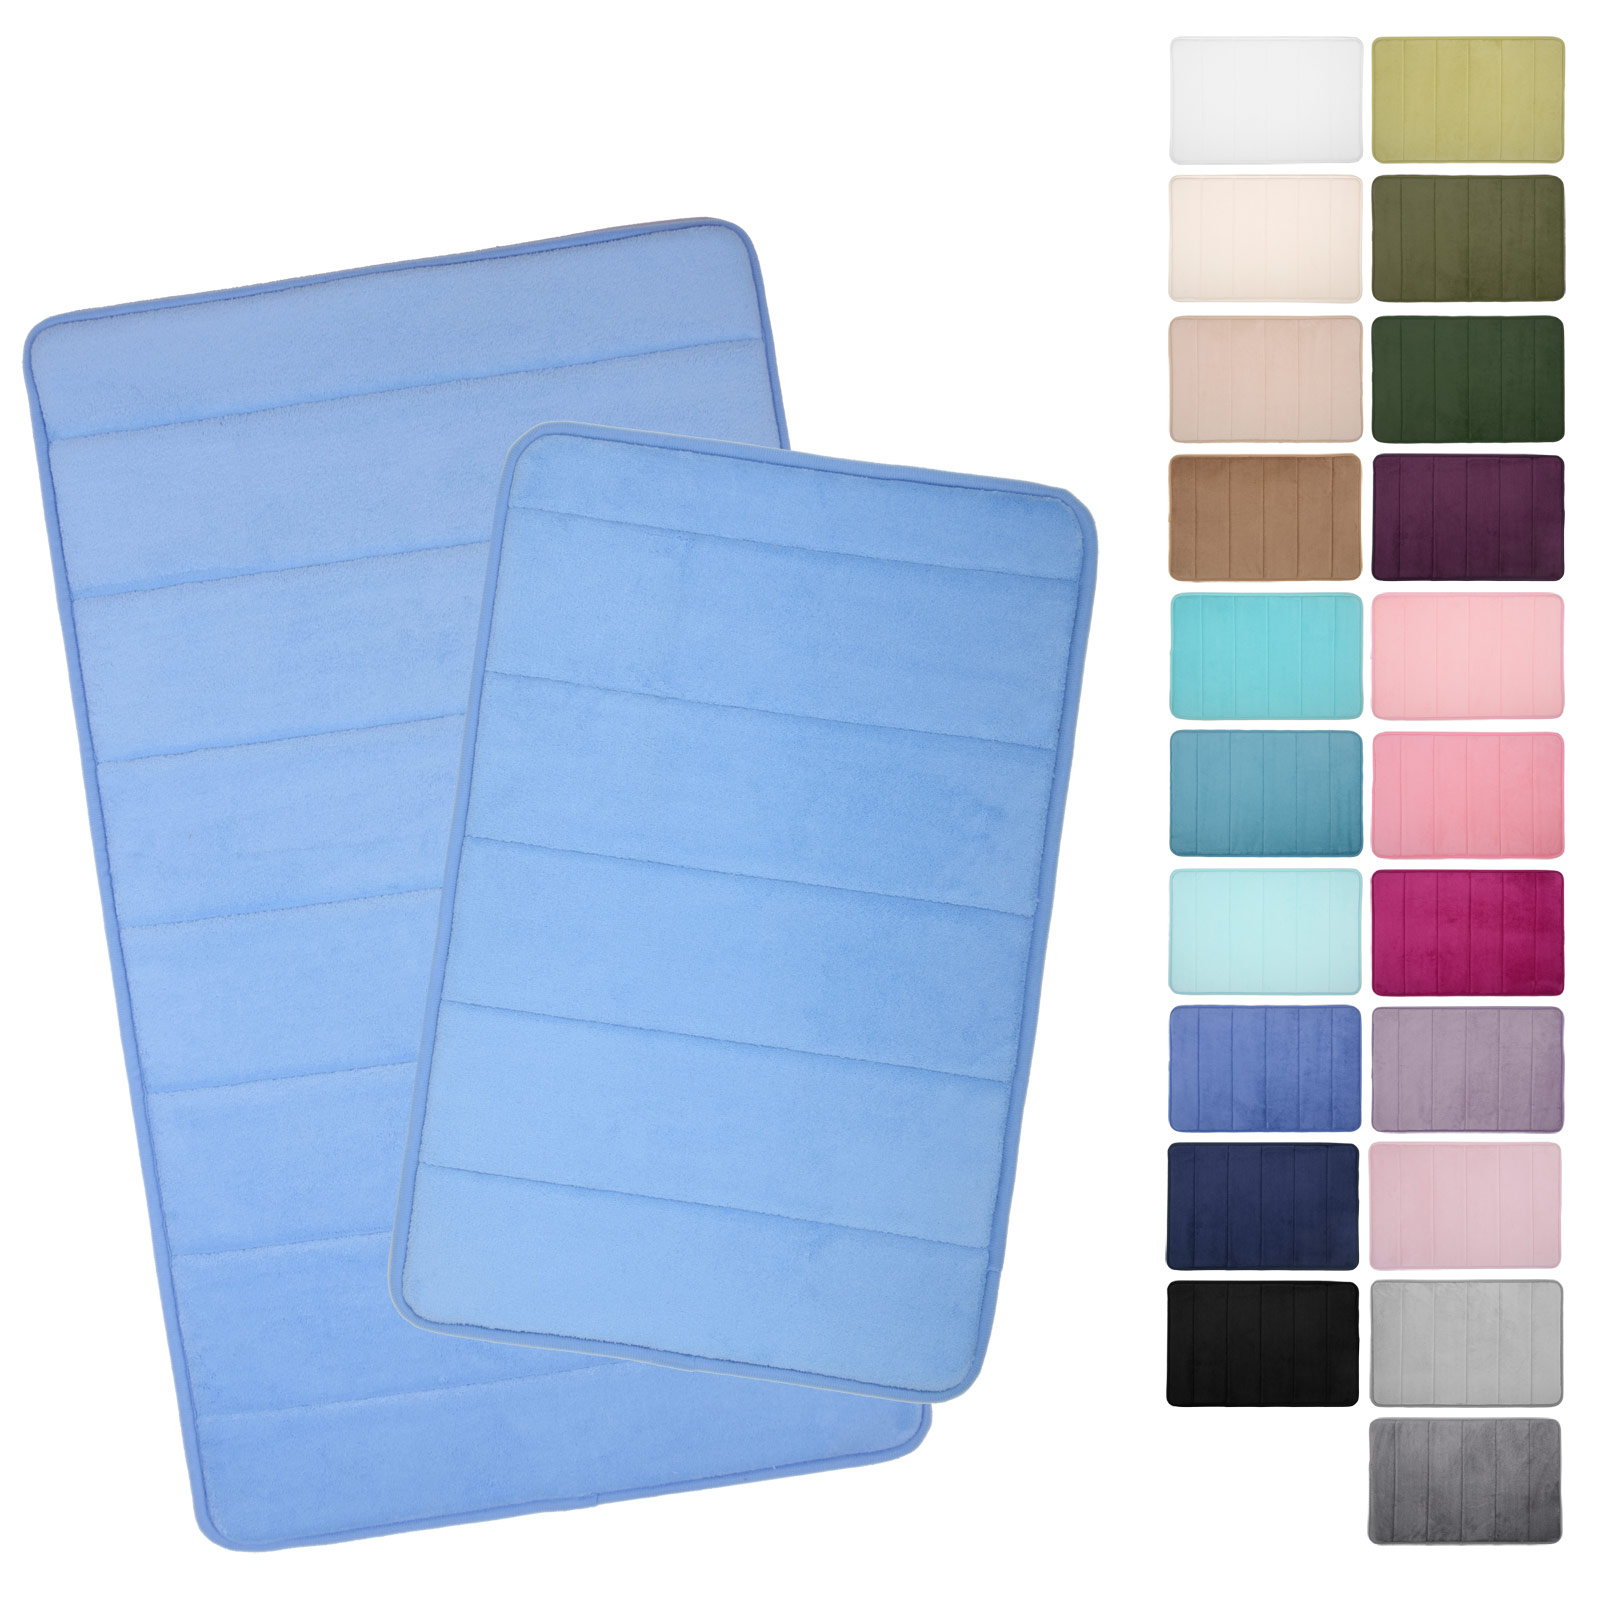 wondrous bath mat master color with various looks colors for bathroom